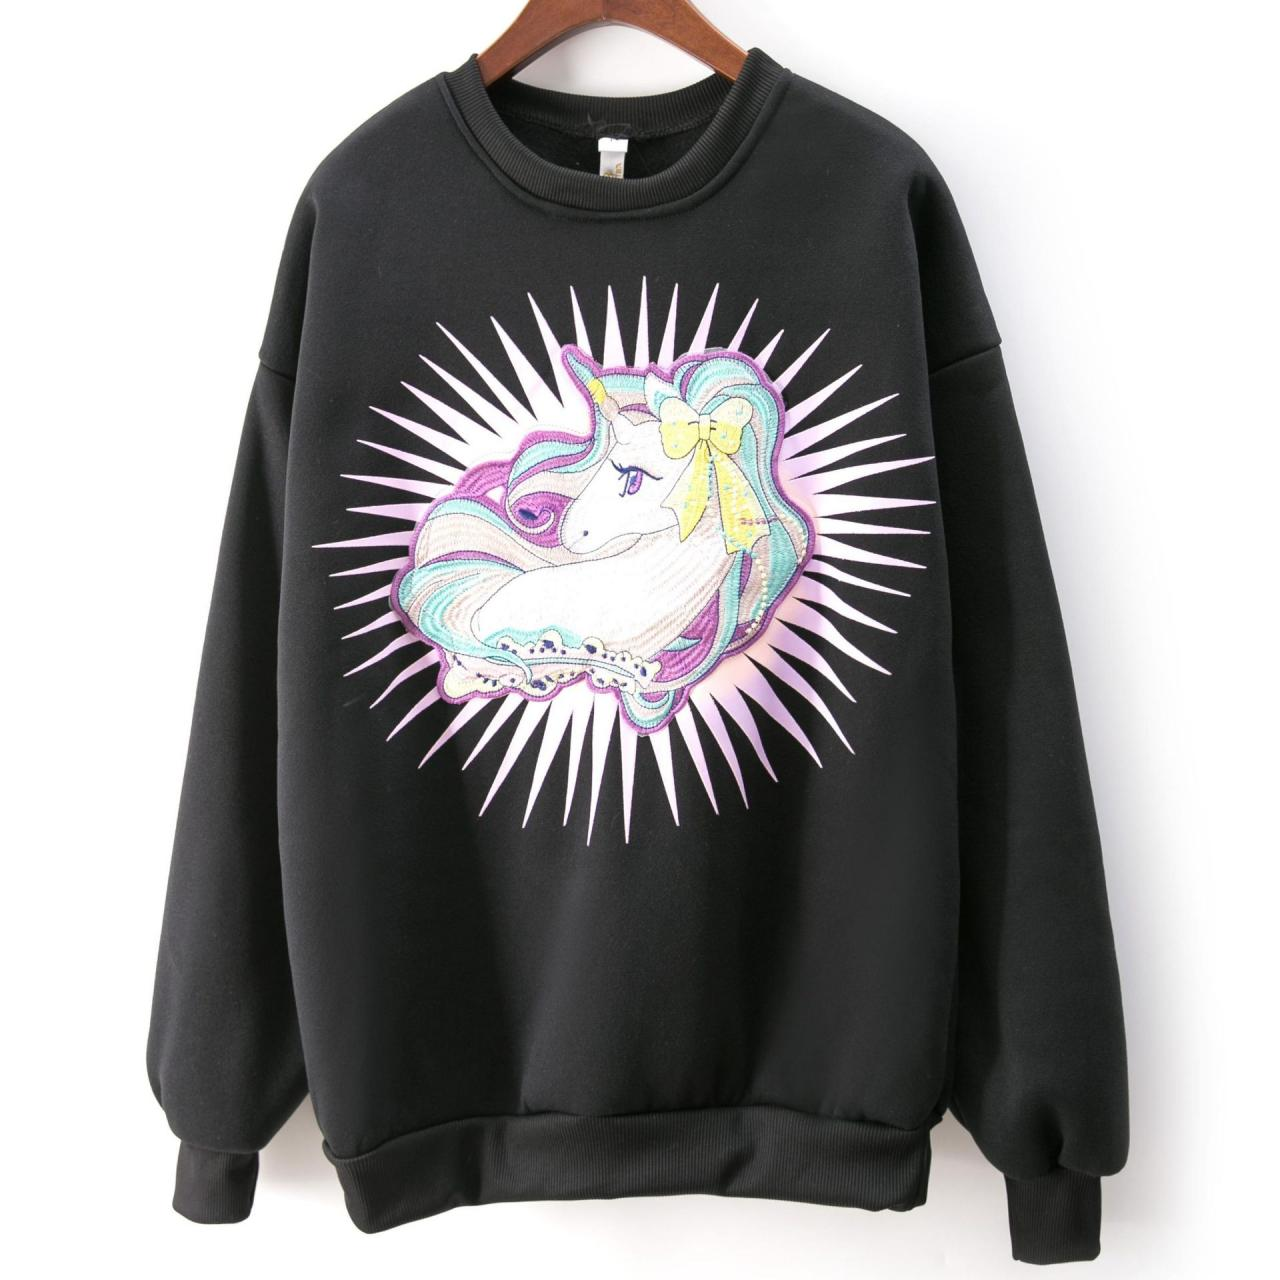 Women Cute Unicorn Embroidery Sweatshirt Fashion Loose Sweatshirt